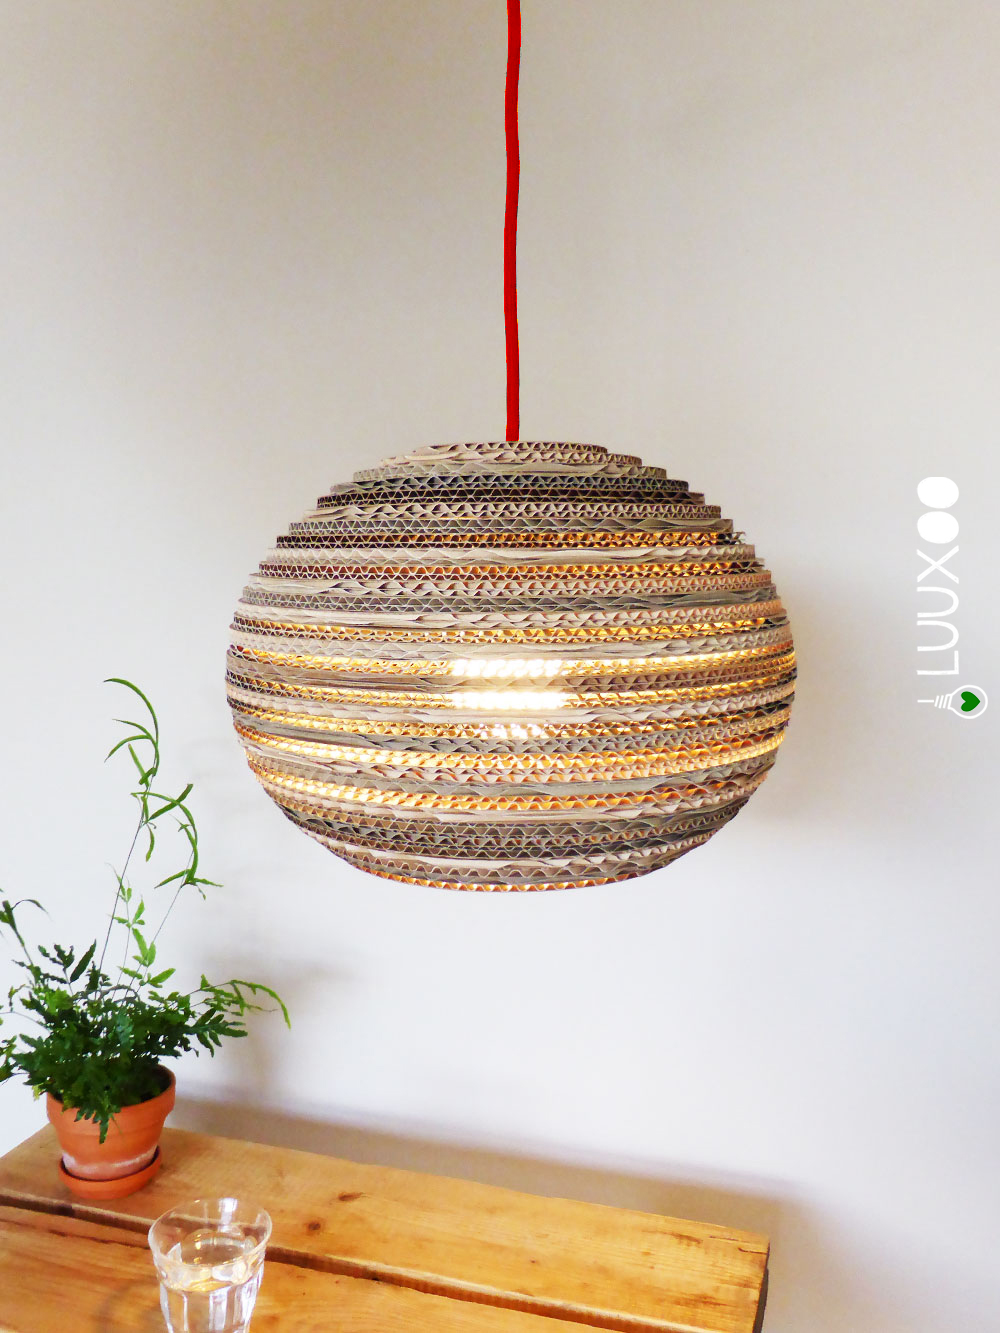 https://luuxoo.nl/wp-content/uploads/2015/06/luuxoo-kartonnen-eettafel-lamp-canta-light-boven-rs.jpg